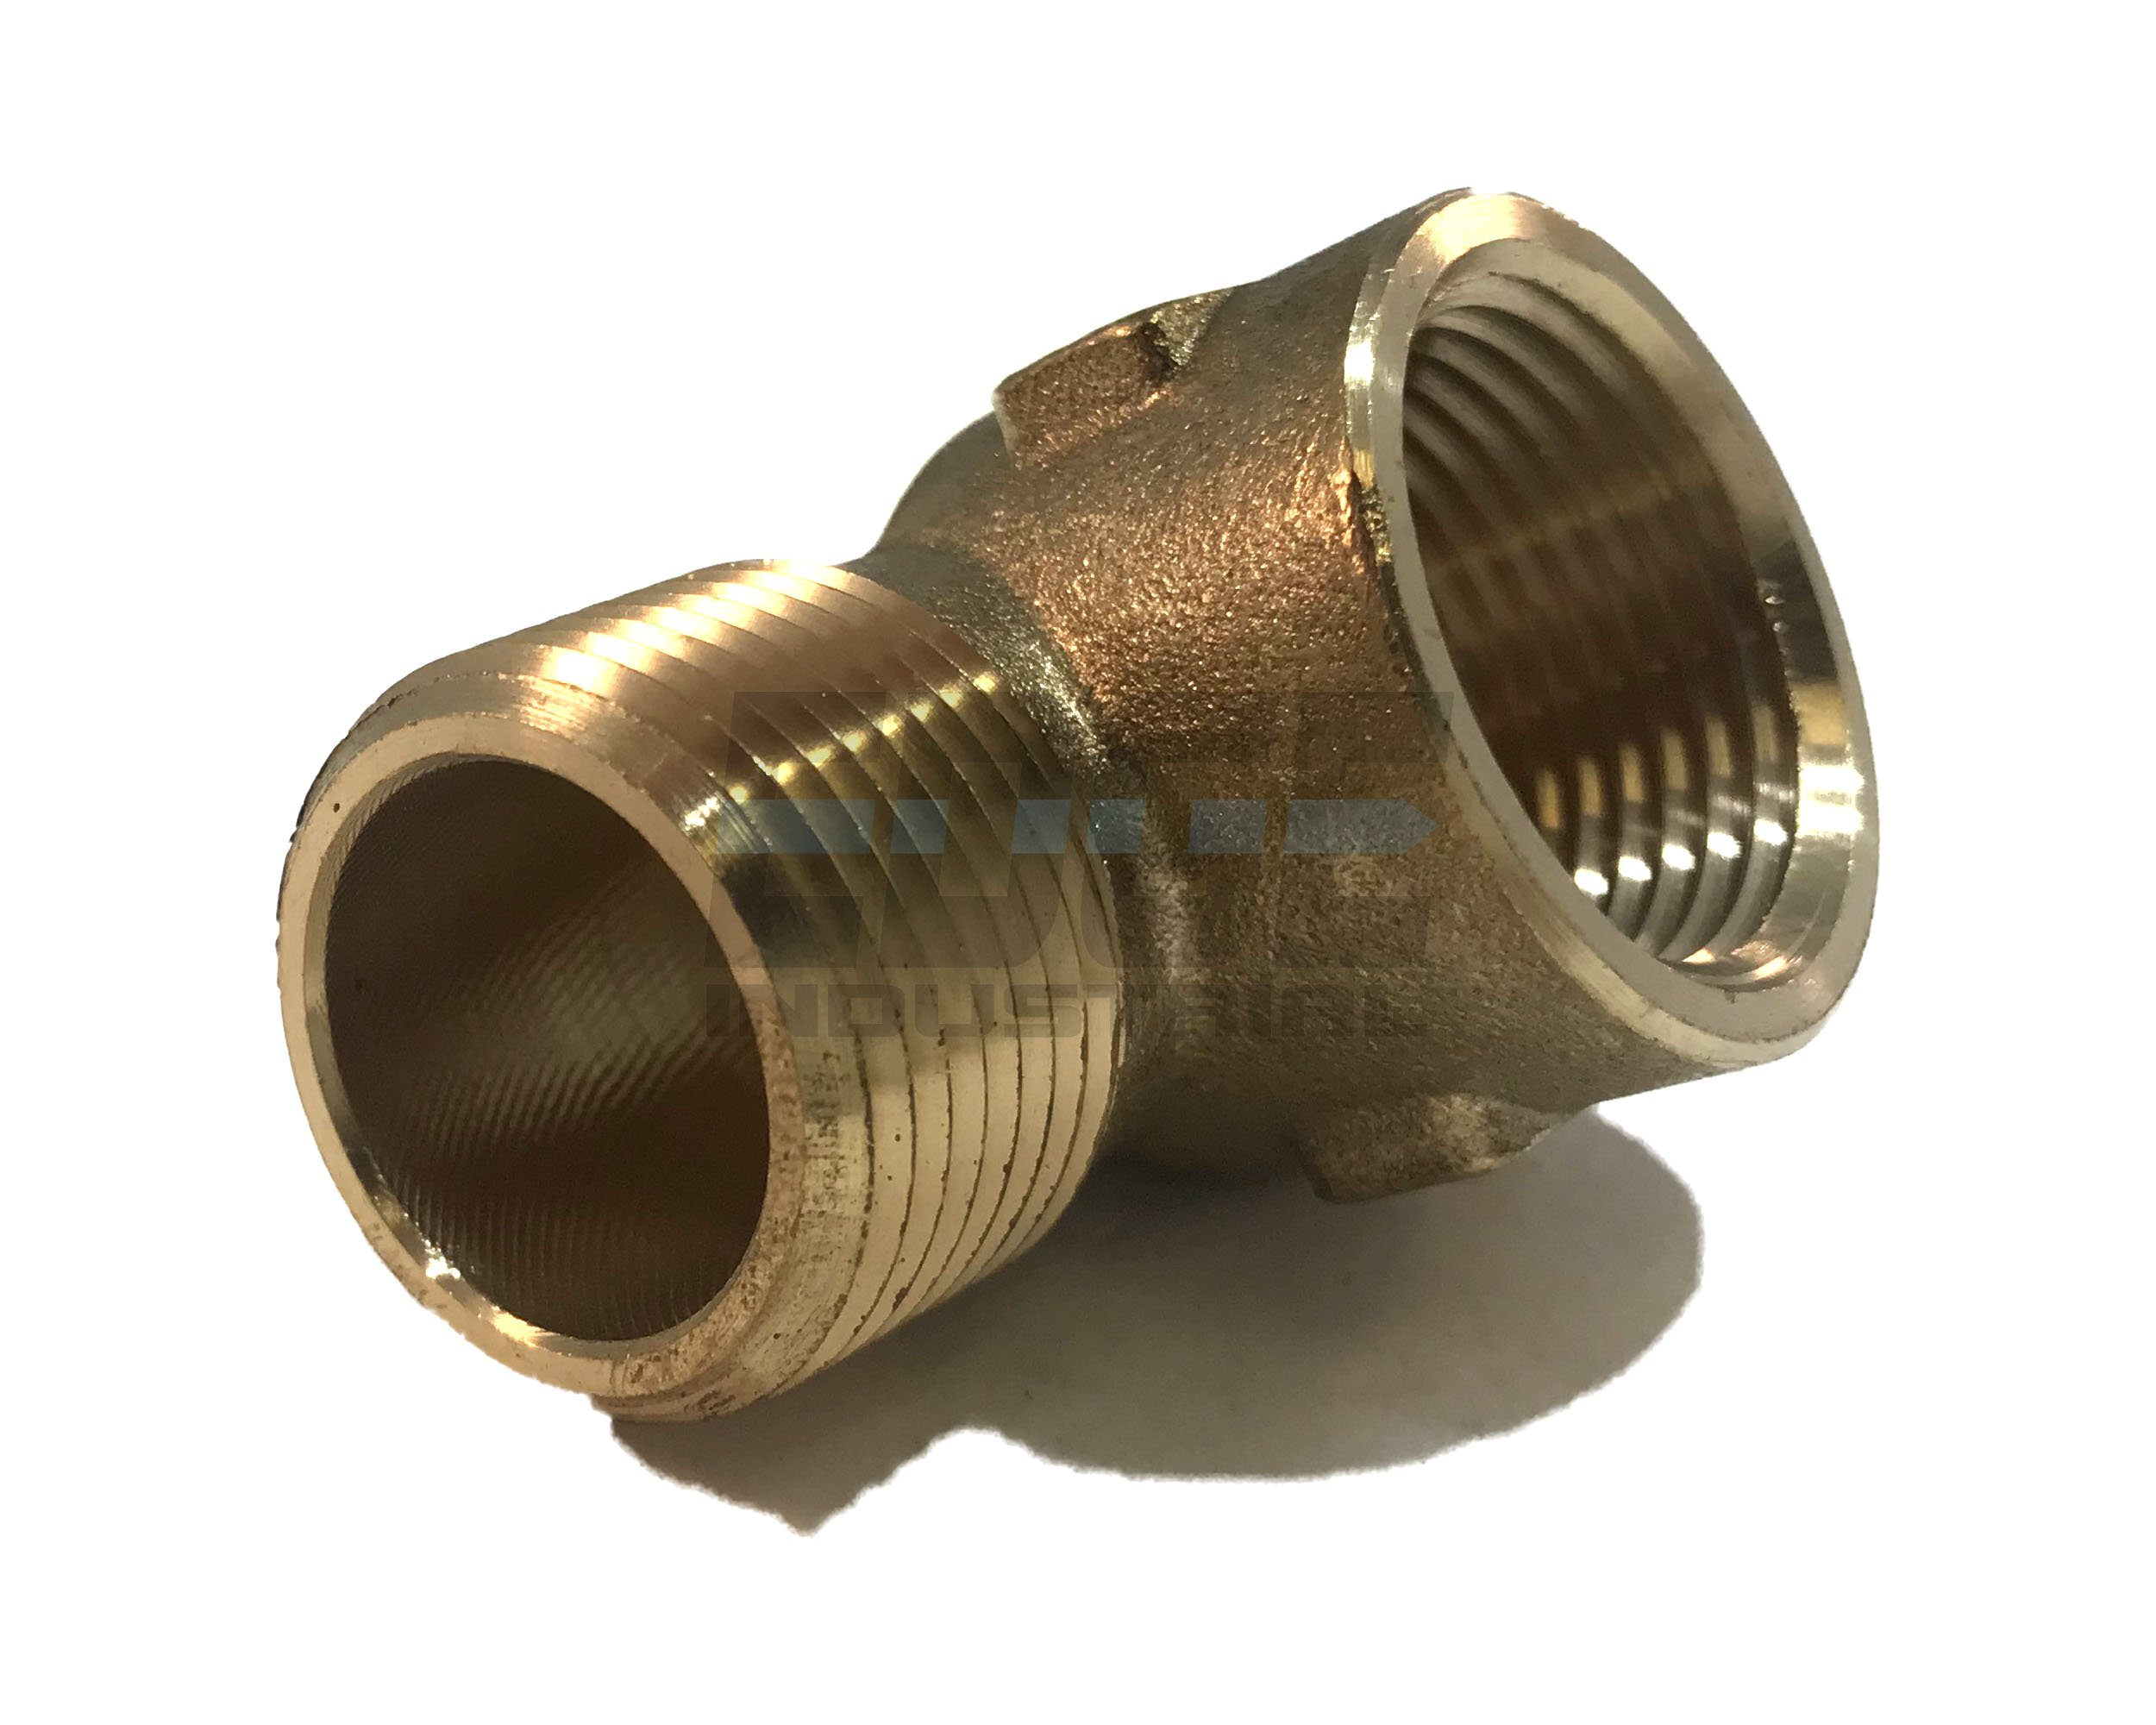 EDGE INDUSTRIAL Forged Brass 90 Degree Street Elbow 3/4'' Male NPT X 3/4'' Female NPT Fuel/AIR/ Water/Oil/ Gas WOG by EDGE INDUSTRIAL